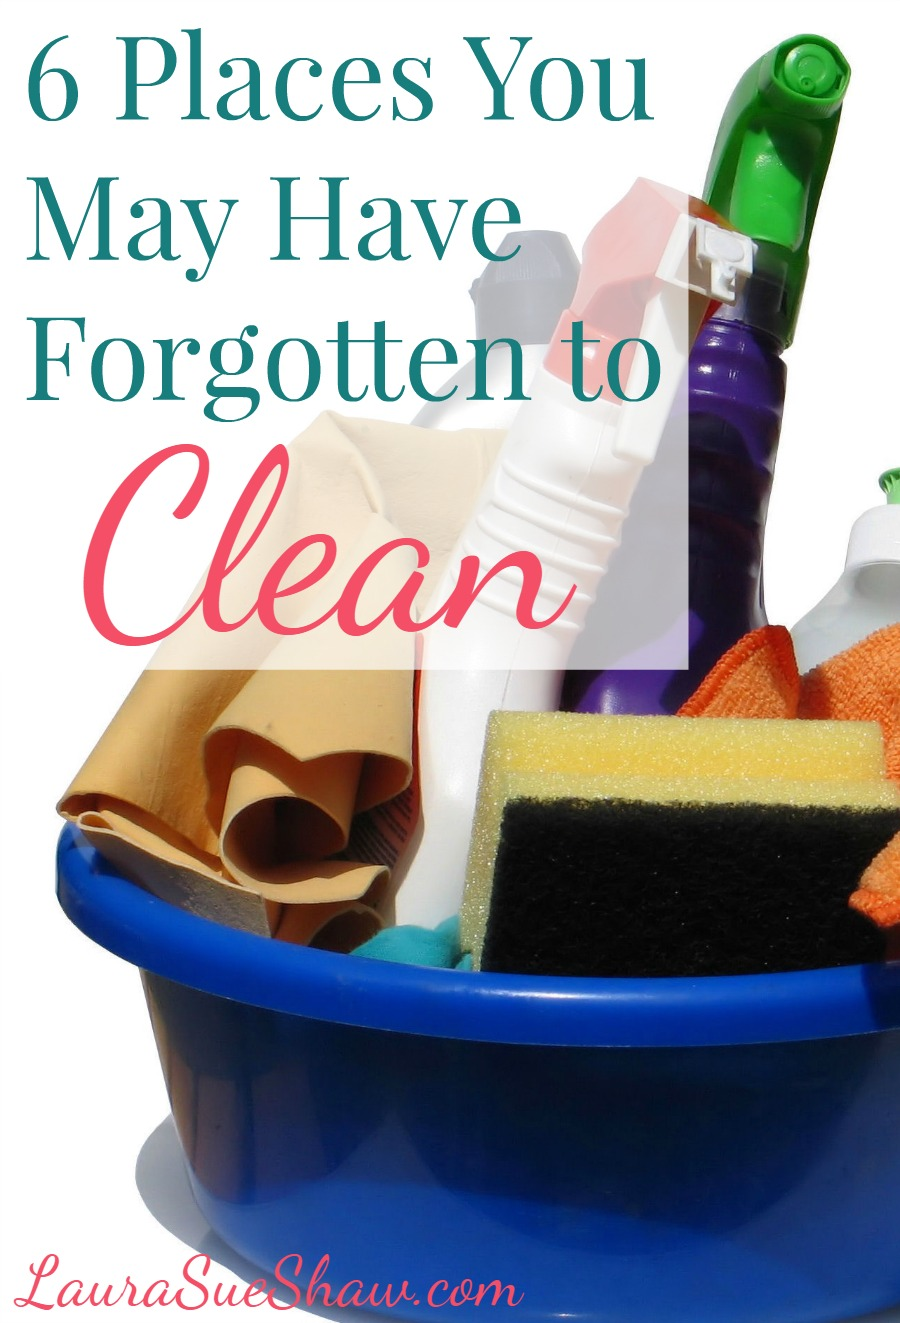 6 Places You Might Have Forgotten to Clean